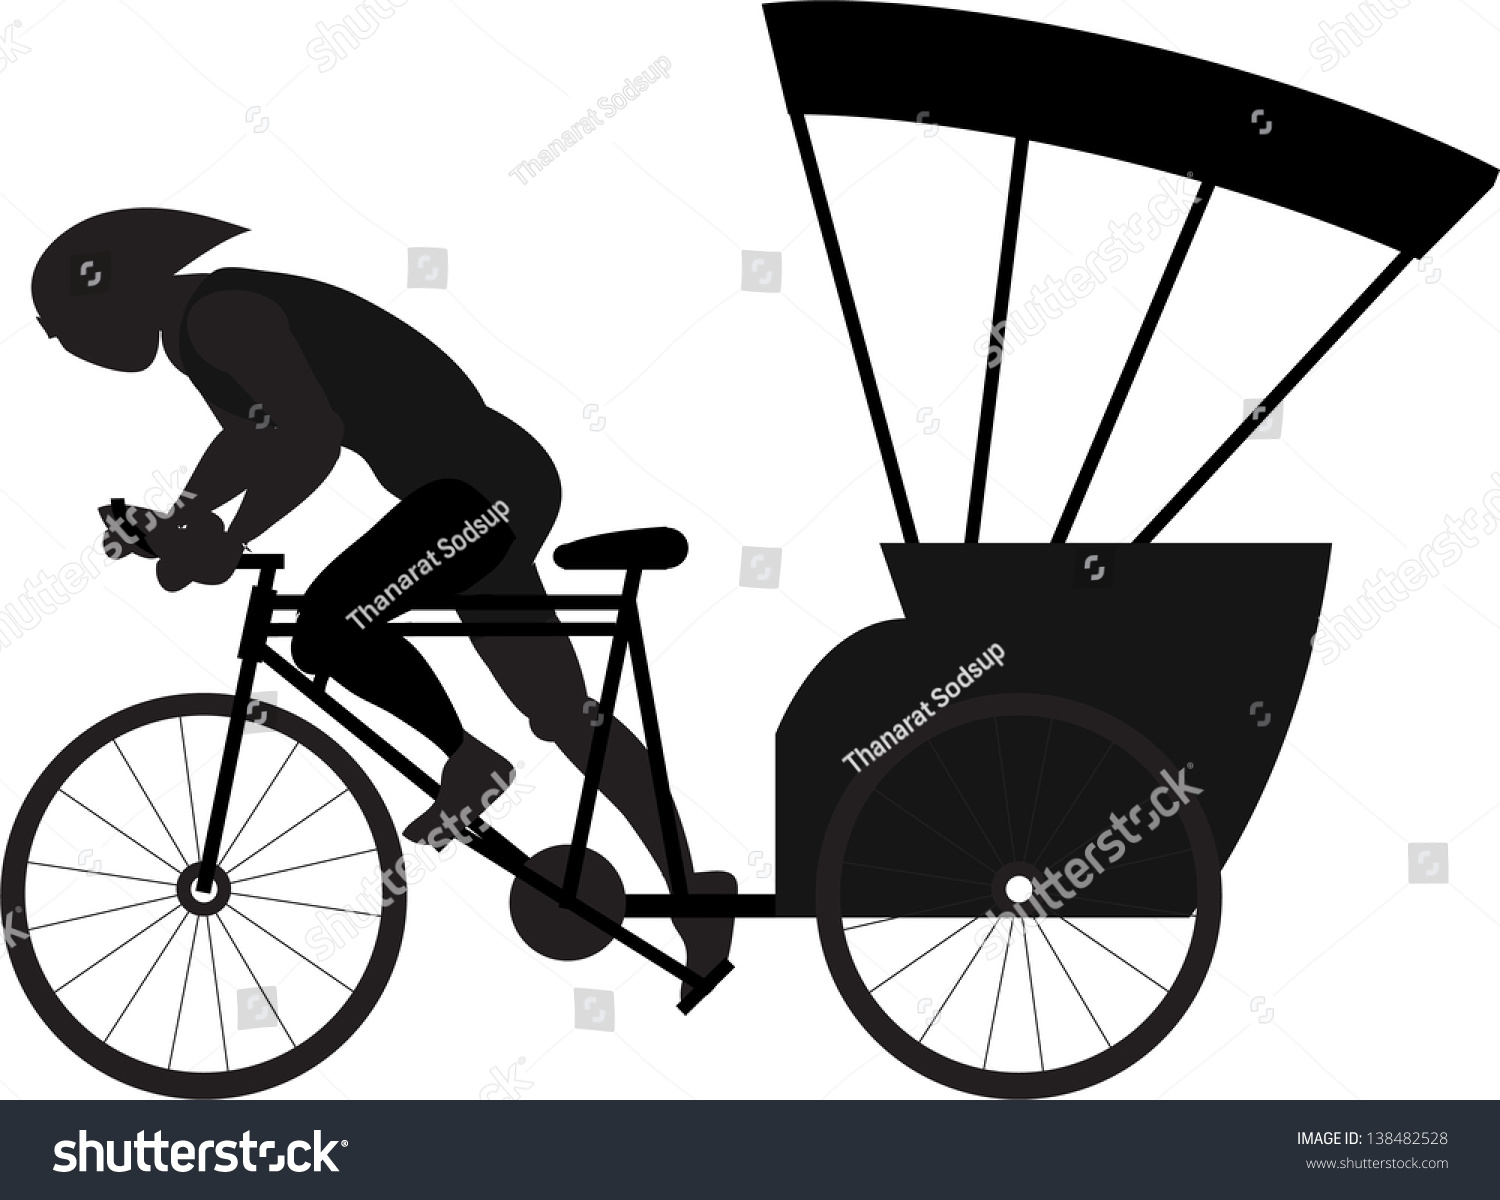 Three Wheel Bicycle Stock Vector (Royalty Free) 138482528 - Shutterstock